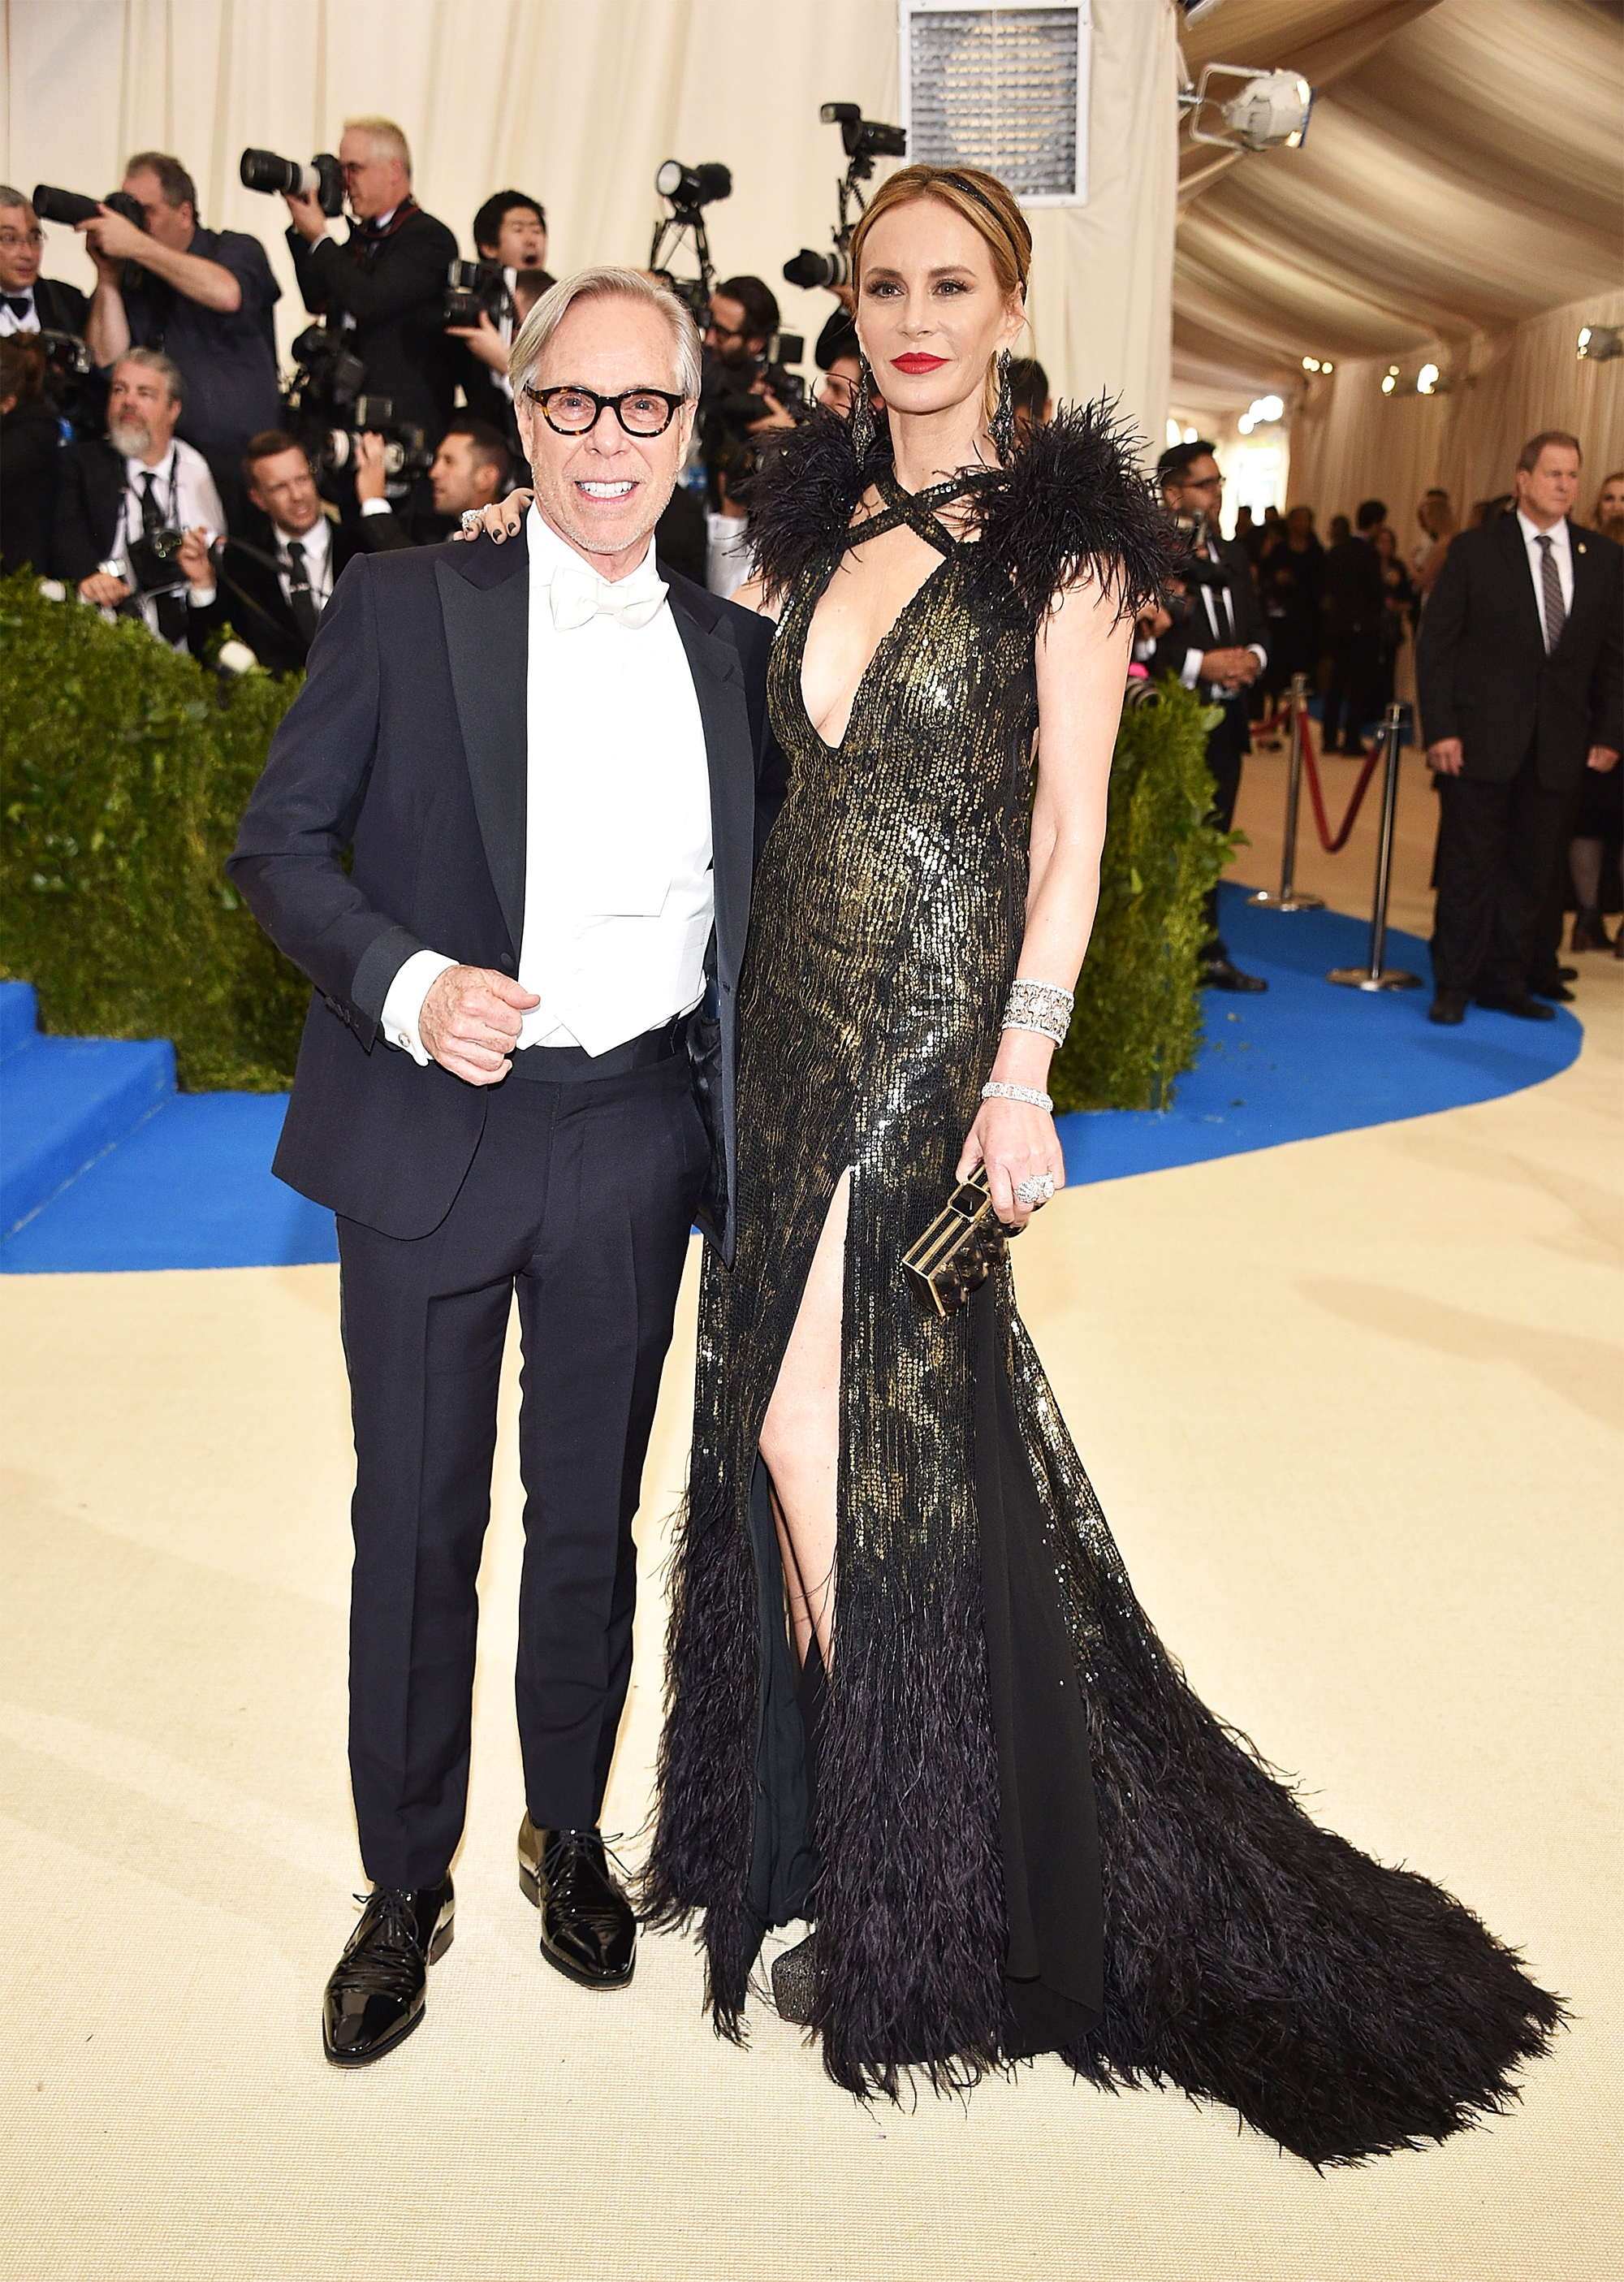 Tommy Hilfiger and Dee Hilfiger attend The Metropolitan Museum of Art's Costume Institute benefit gala celebrating the opening of the Rei Kawakubo/Comme des Garçons: Art of the In-Between exhibition in New York City, on May 1, 2017.